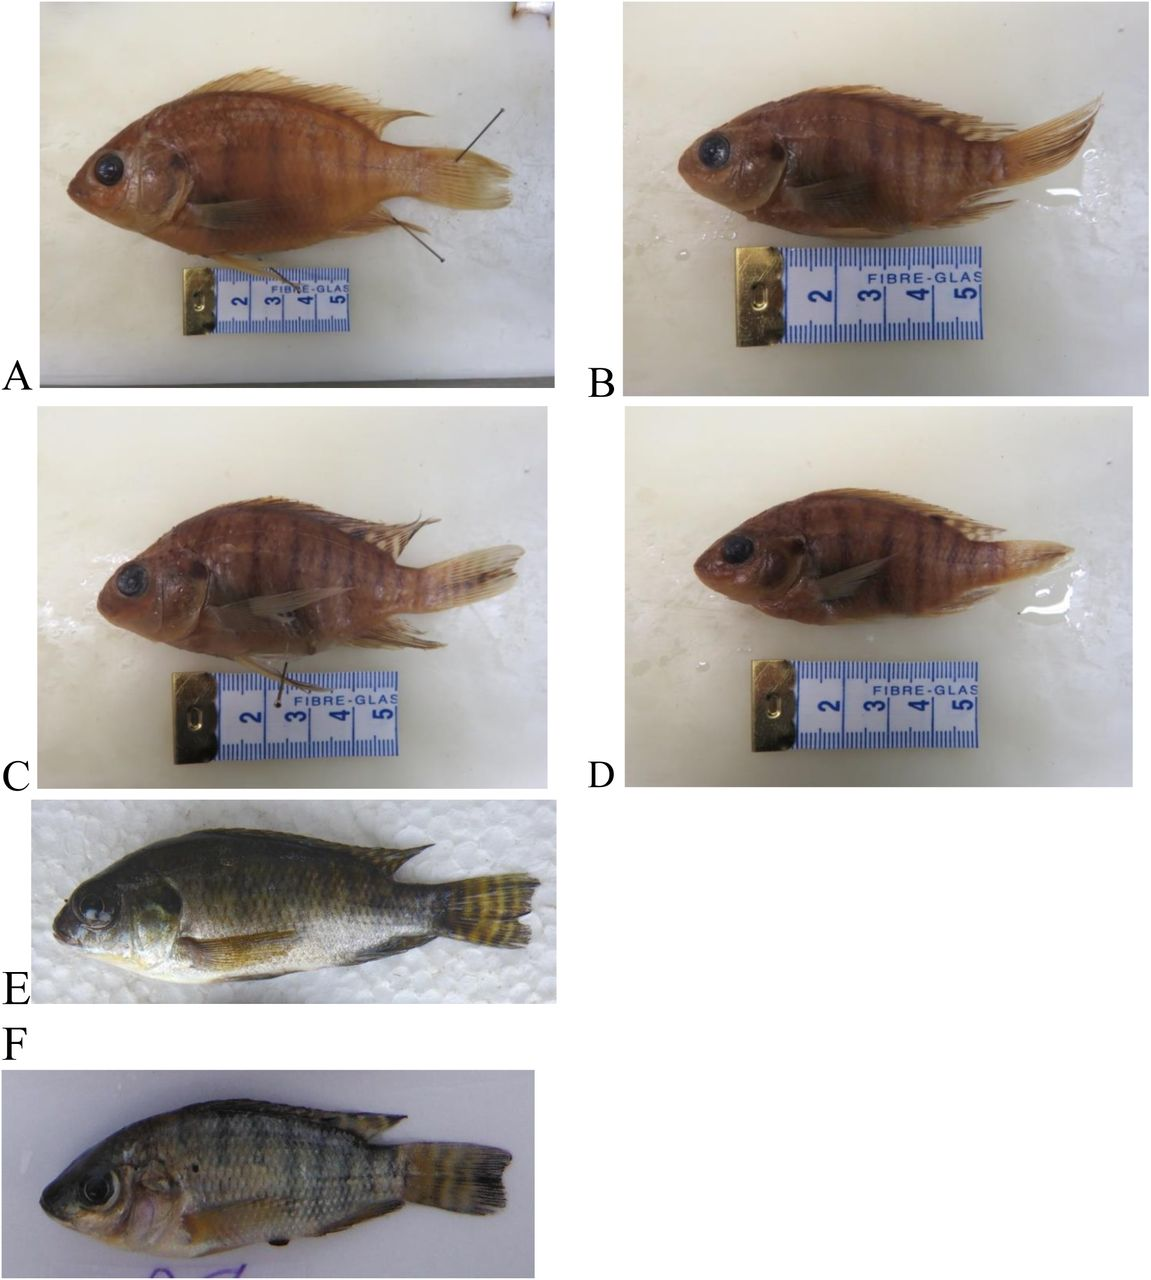 A survey of fishes of Hombolo Lake, Dodoma, Tanzania, with